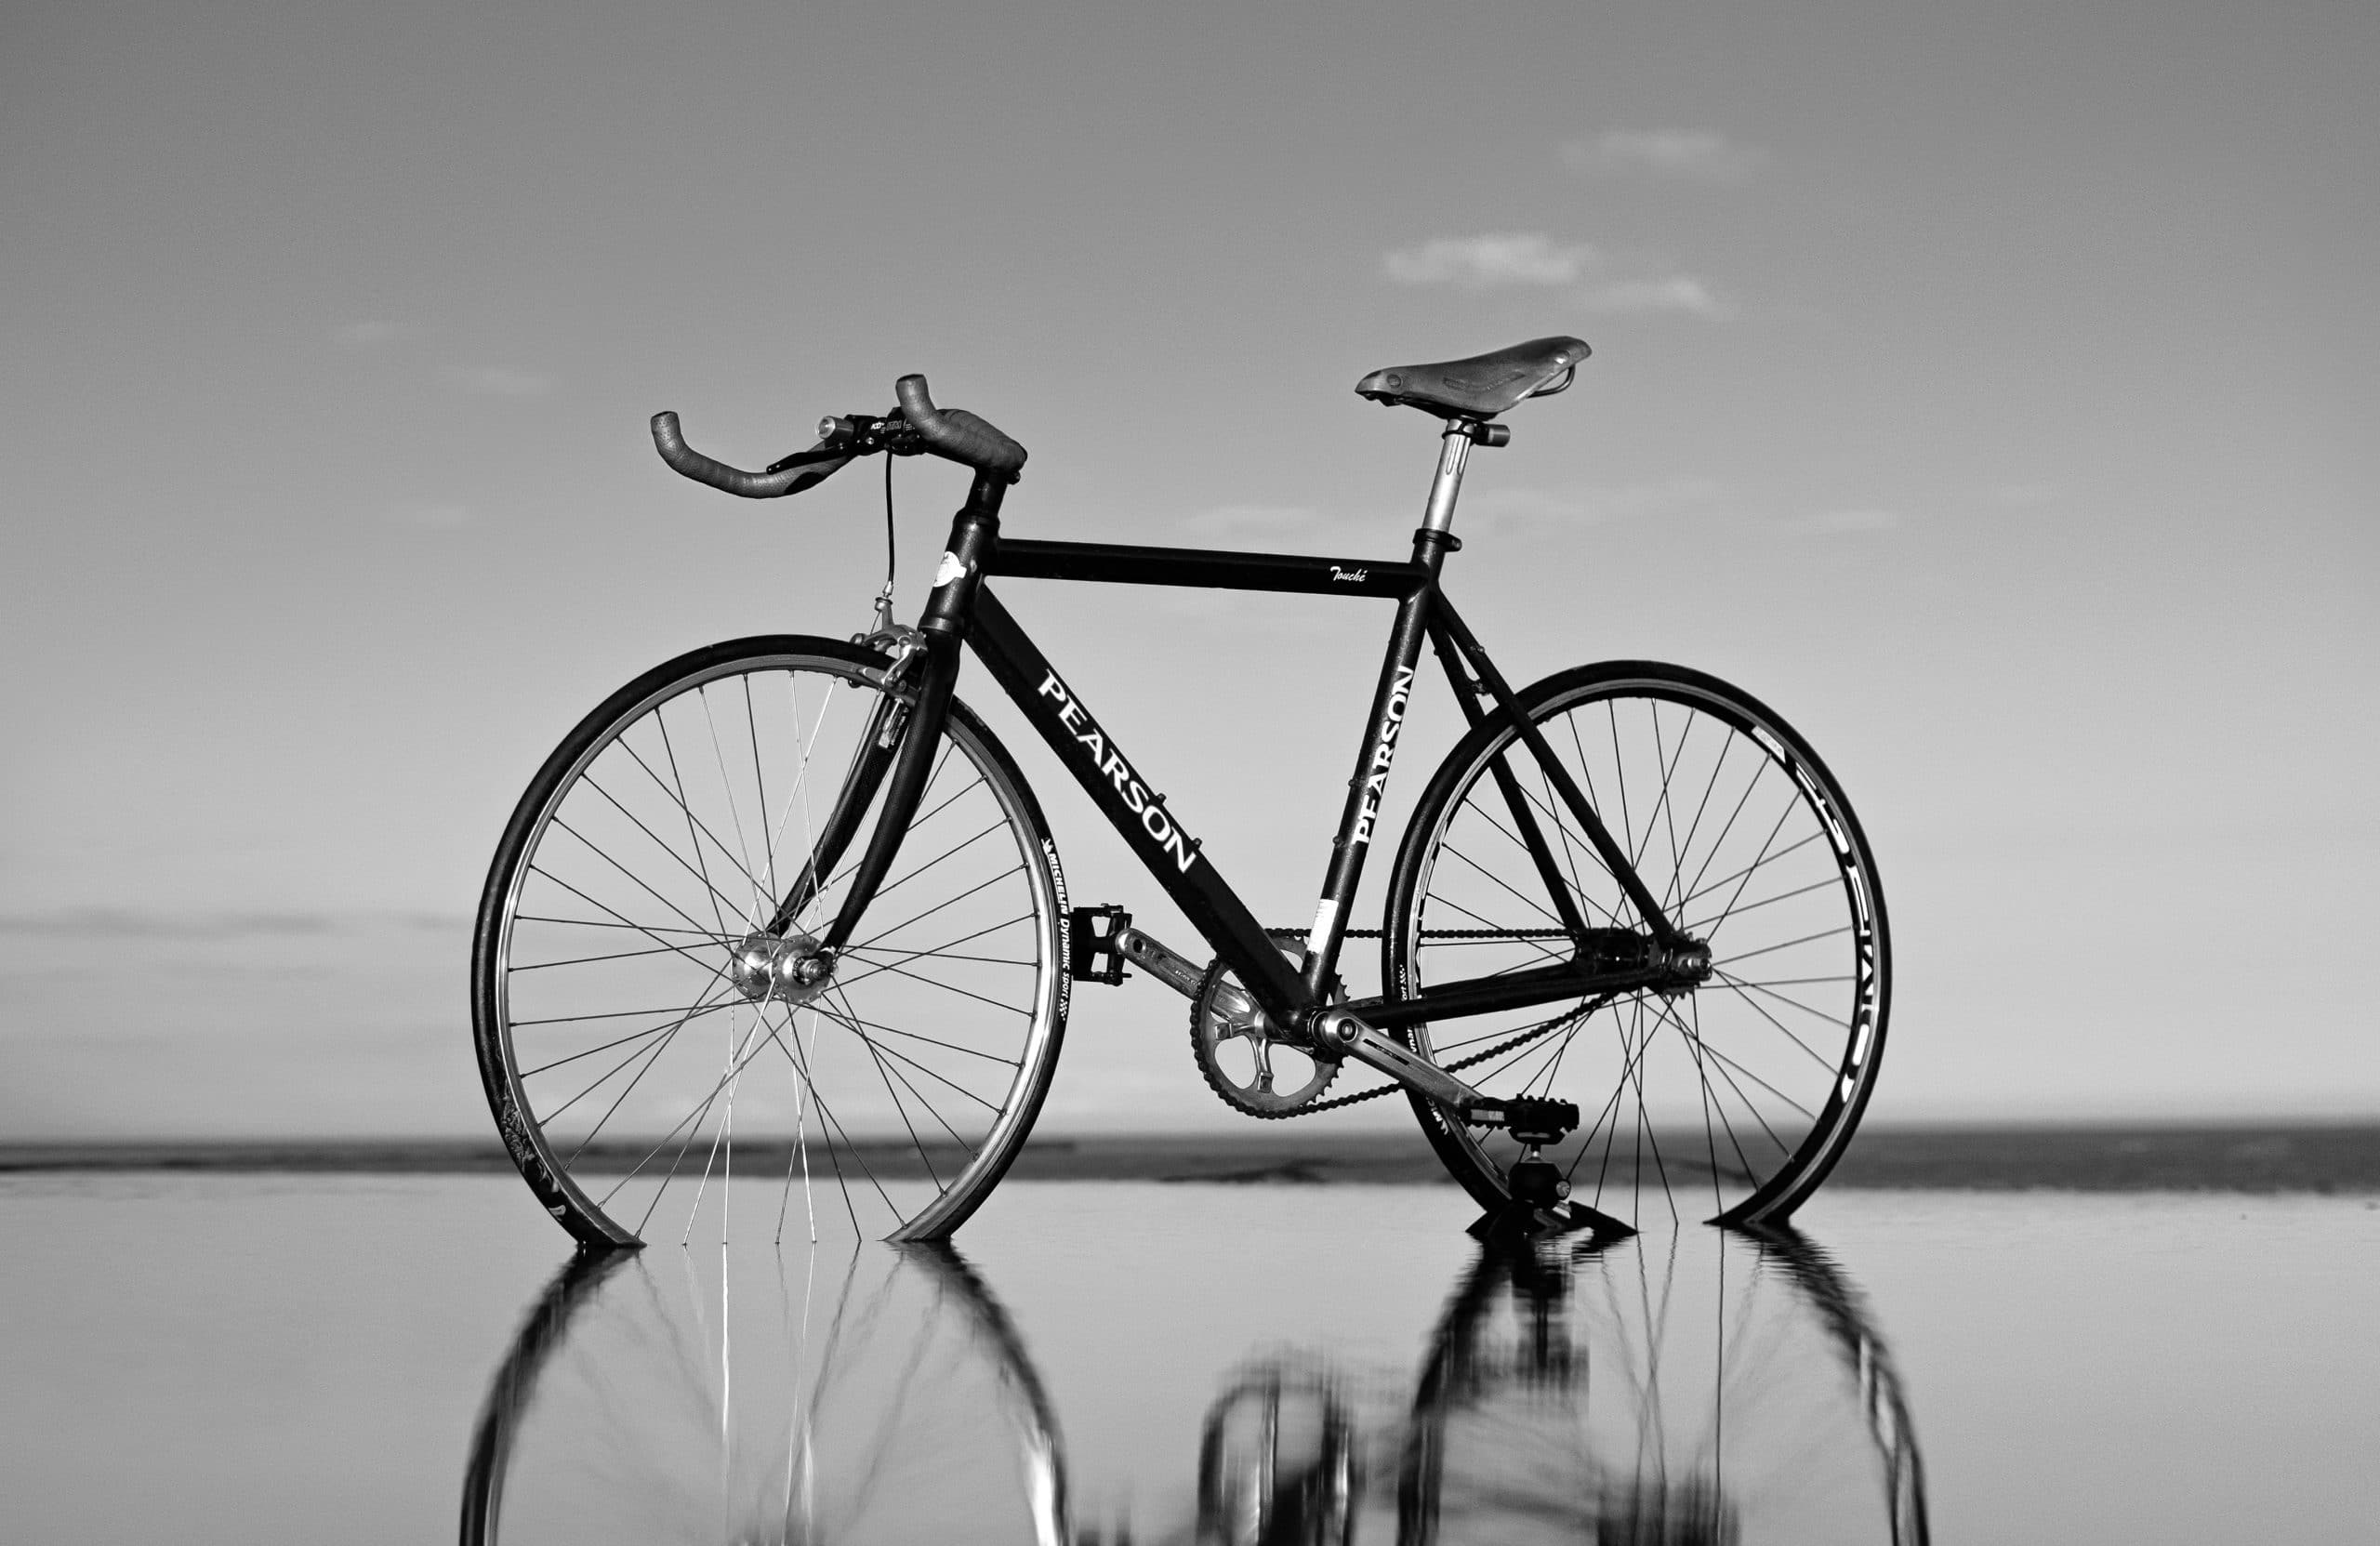 Cheap vs Expensive Bikes: What's The Difference? - The ...